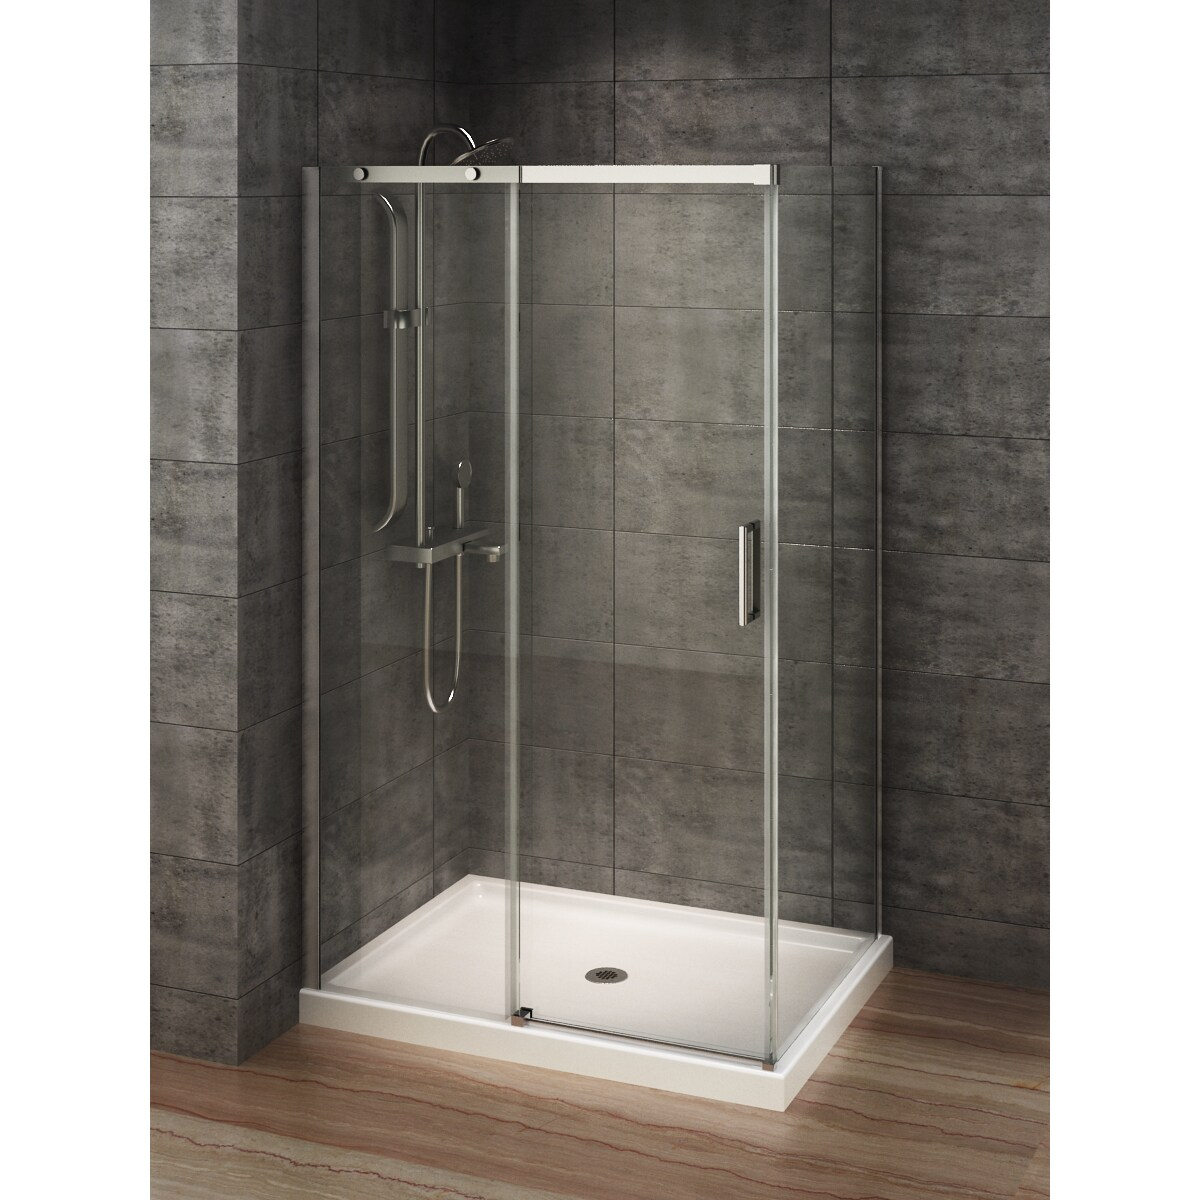 Shop Berlin Glass 48-inch x 32-inch Rectangular Corner Shower Stall ...